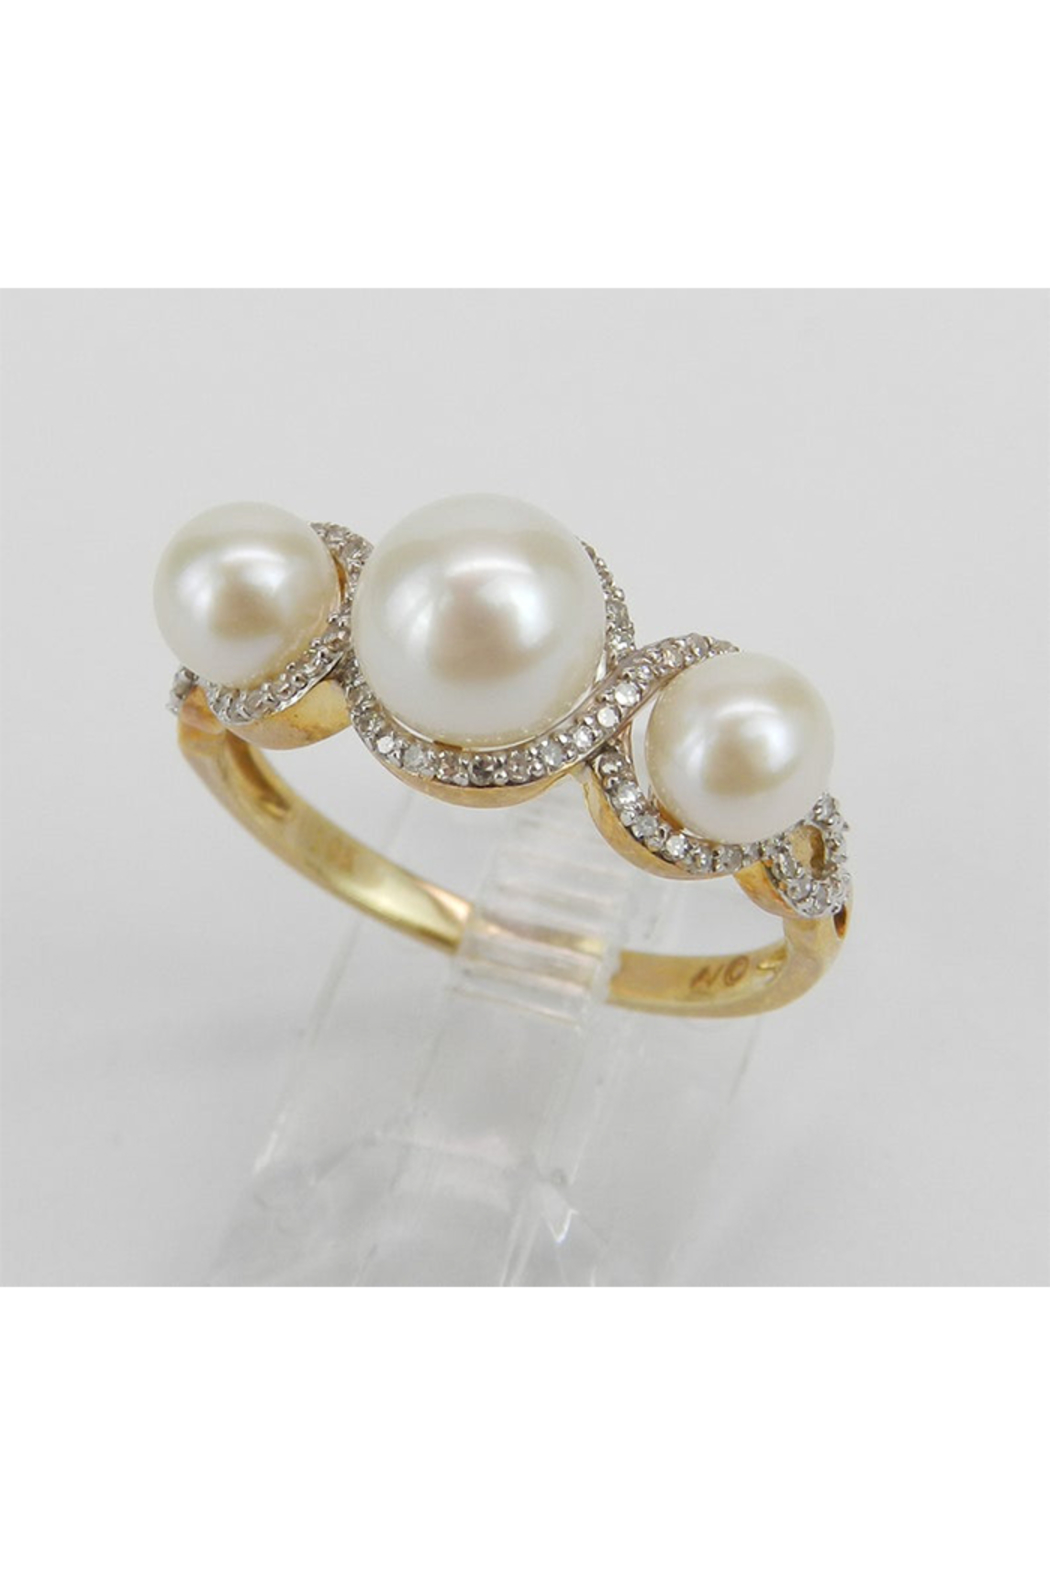 Margolin & Co Pearl and Diamond Ring, Halo Engagement Ring, Yellow Gold Three Stone Ring, Pearl Engagement Ring, June Birthstone Ring, Pearl Ring - Back Cropped Image